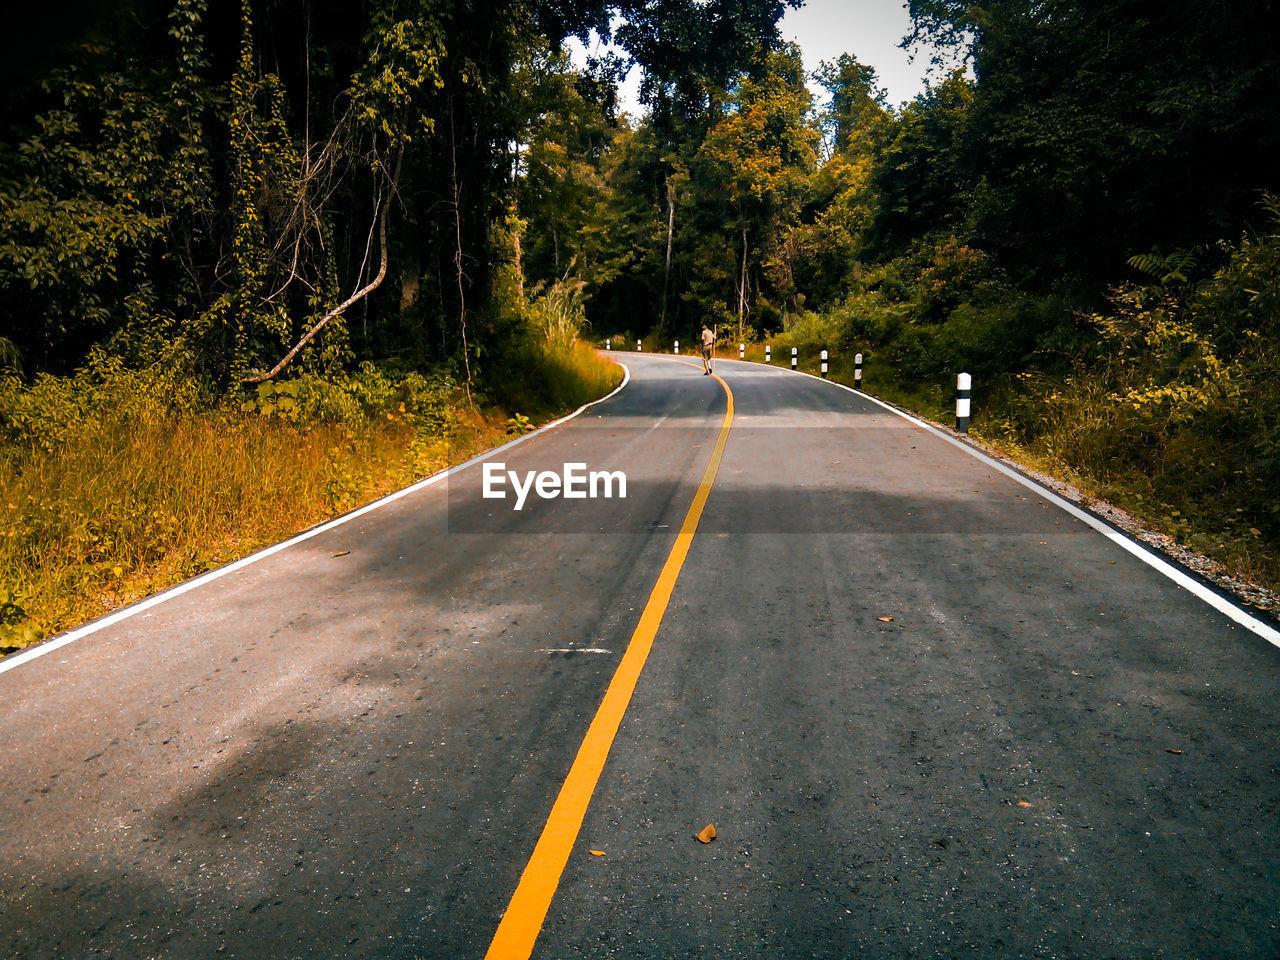 tree, the way forward, direction, plant, symbol, marking, sign, road marking, transportation, road, nature, no people, day, diminishing perspective, double yellow line, asphalt, forest, empty road, tranquility, land, outdoors, dividing line, long